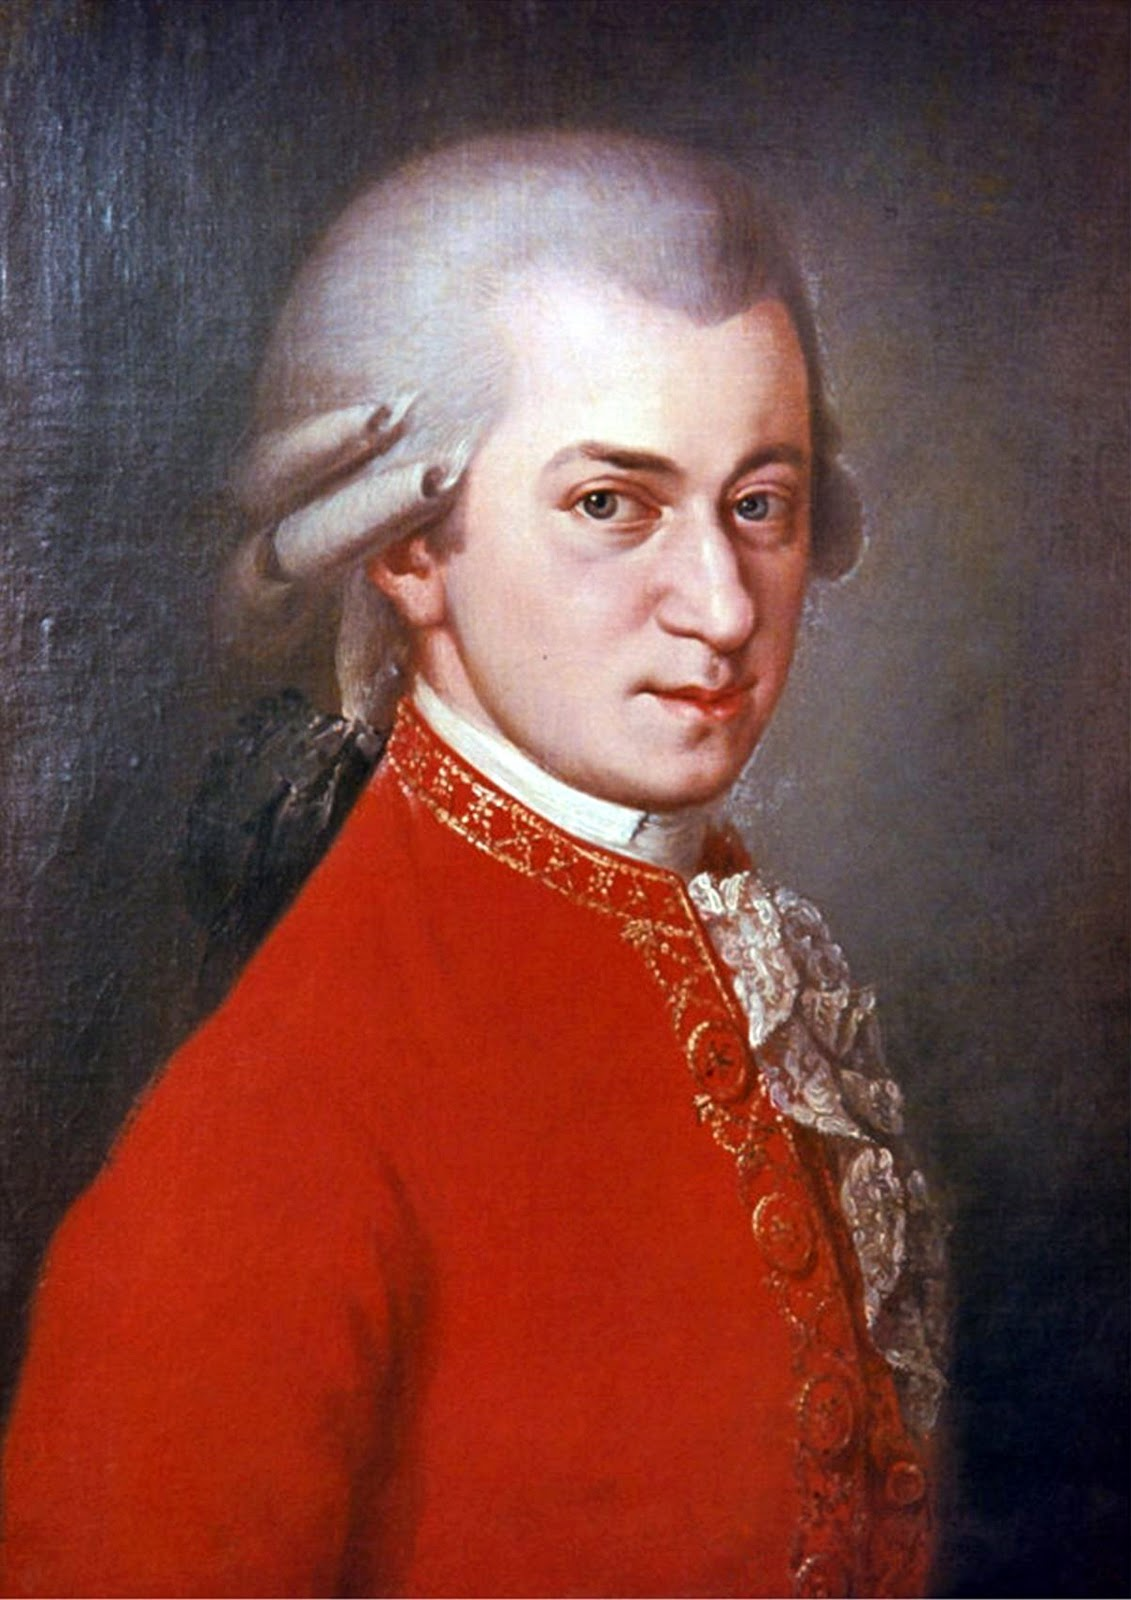 the life and history of wolfgang amadeus mozart Life of mozart perhaps no one has ever exemplified the idea of a child prodigy like wolfgang amadeus mozart born in 1756, he was already playing family instruments.